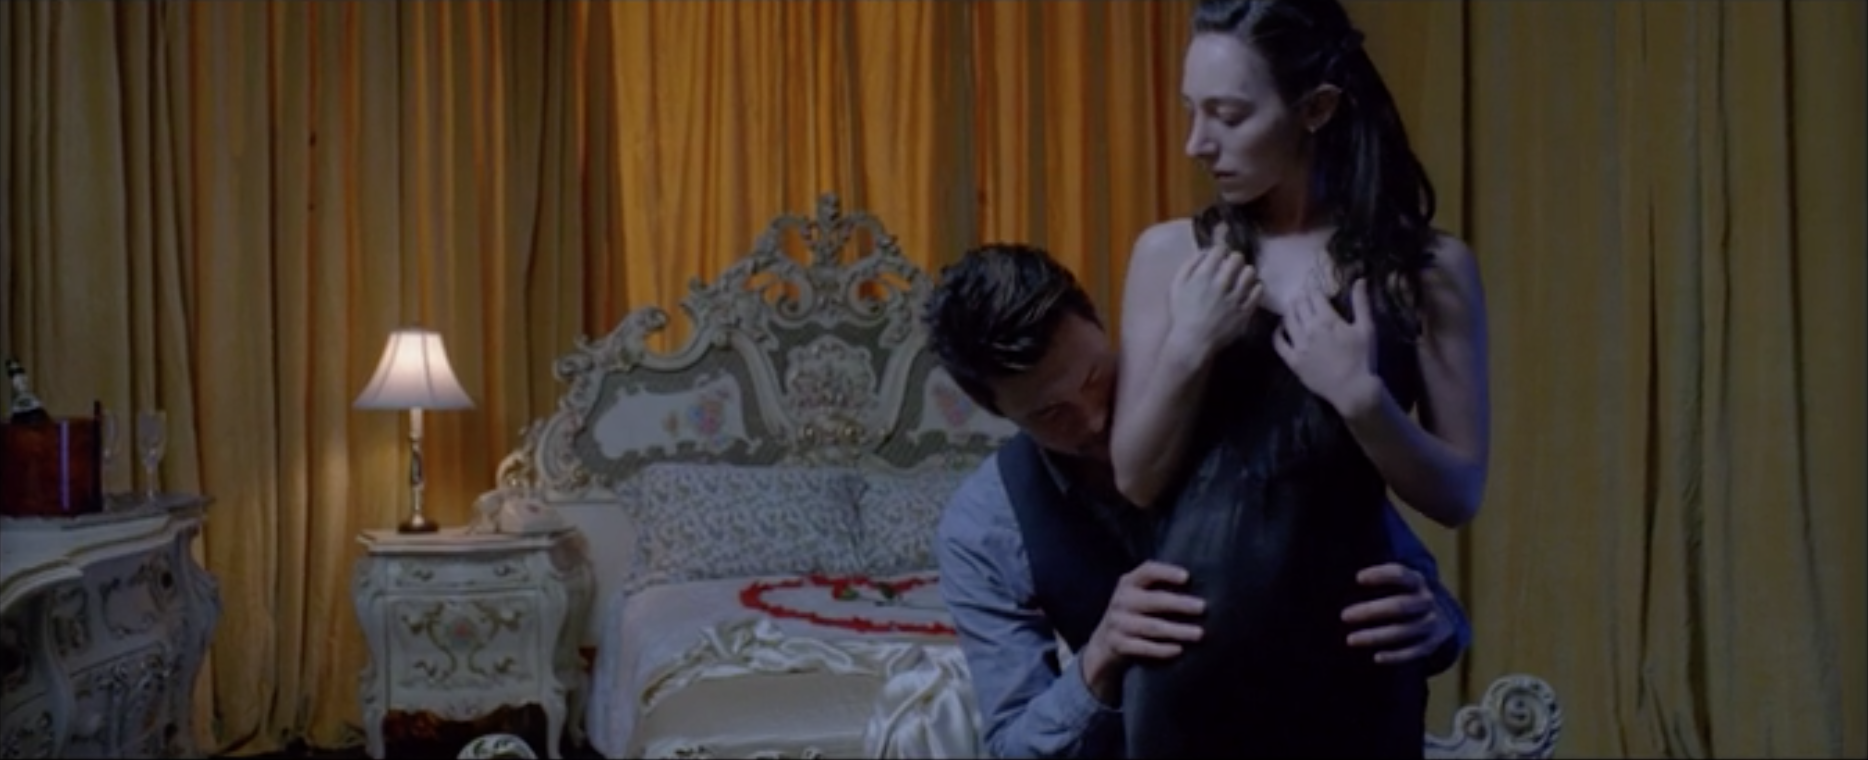 A young woman in a honeymoon suite, abandoned by her fiance, dreams of a mysterious man.  Directed by Meredith Koch  Cinematography by Tara Violet Niami